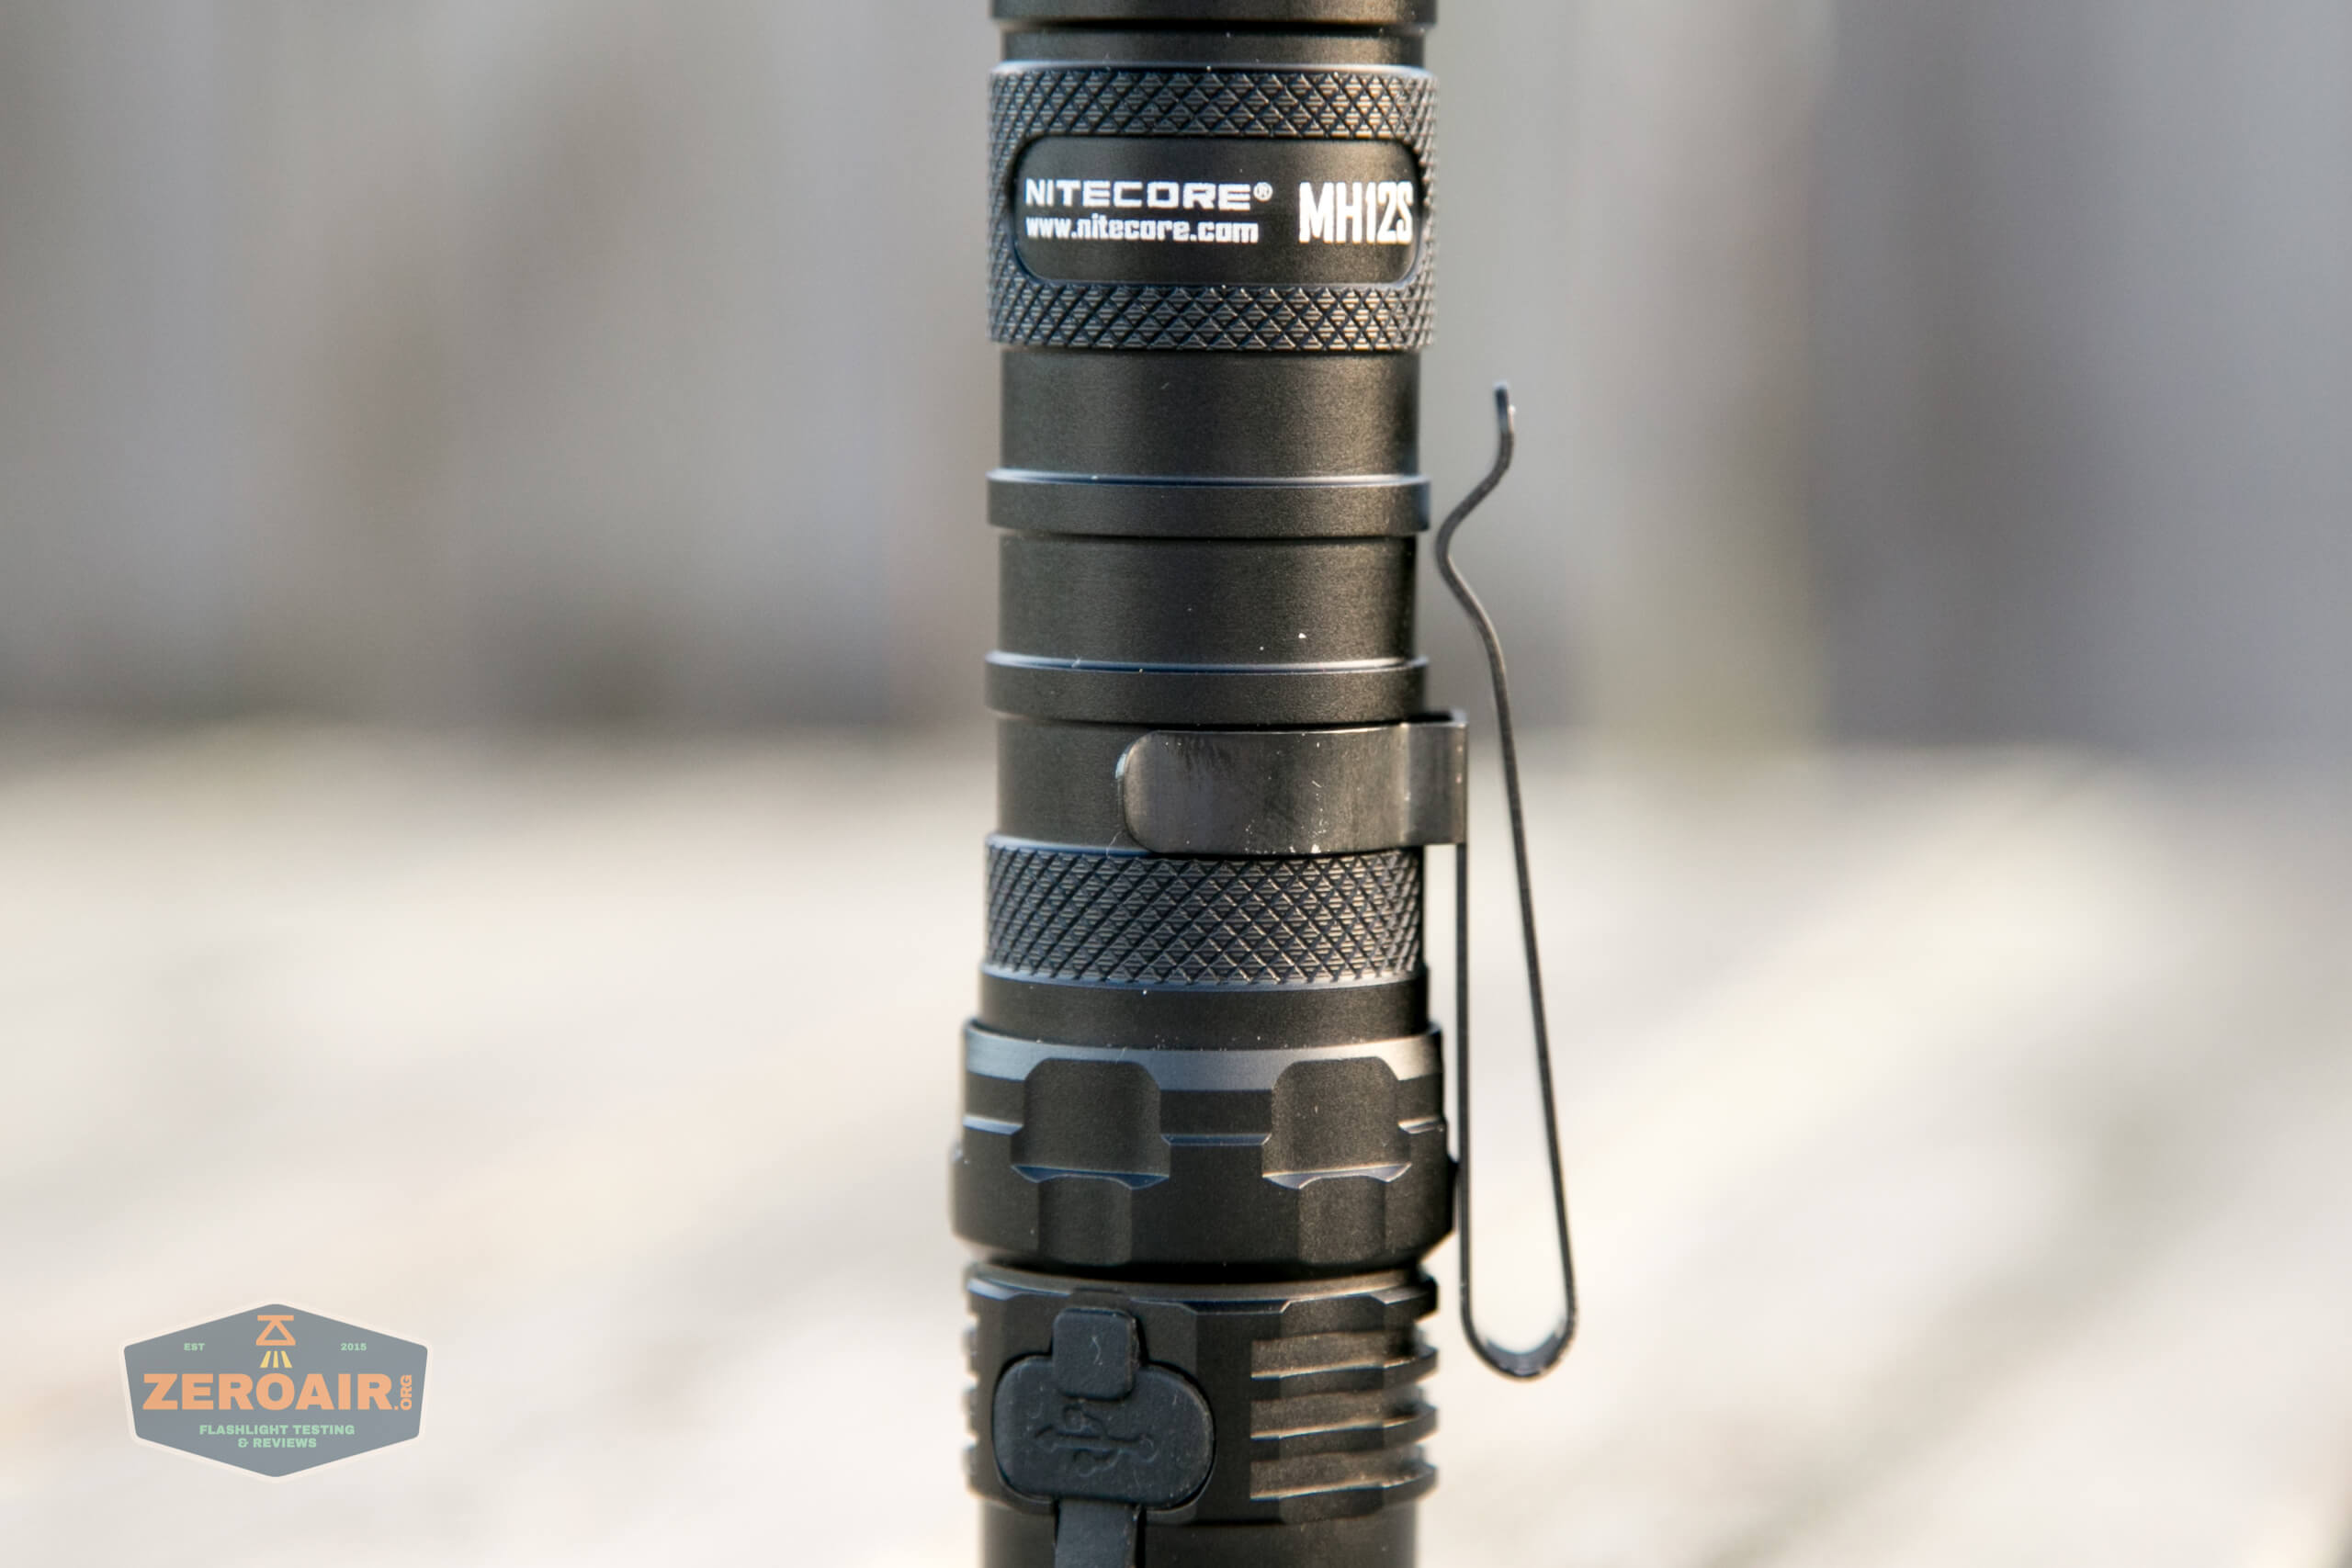 nitecore mh12s tactical flashlights pocket clip on head end